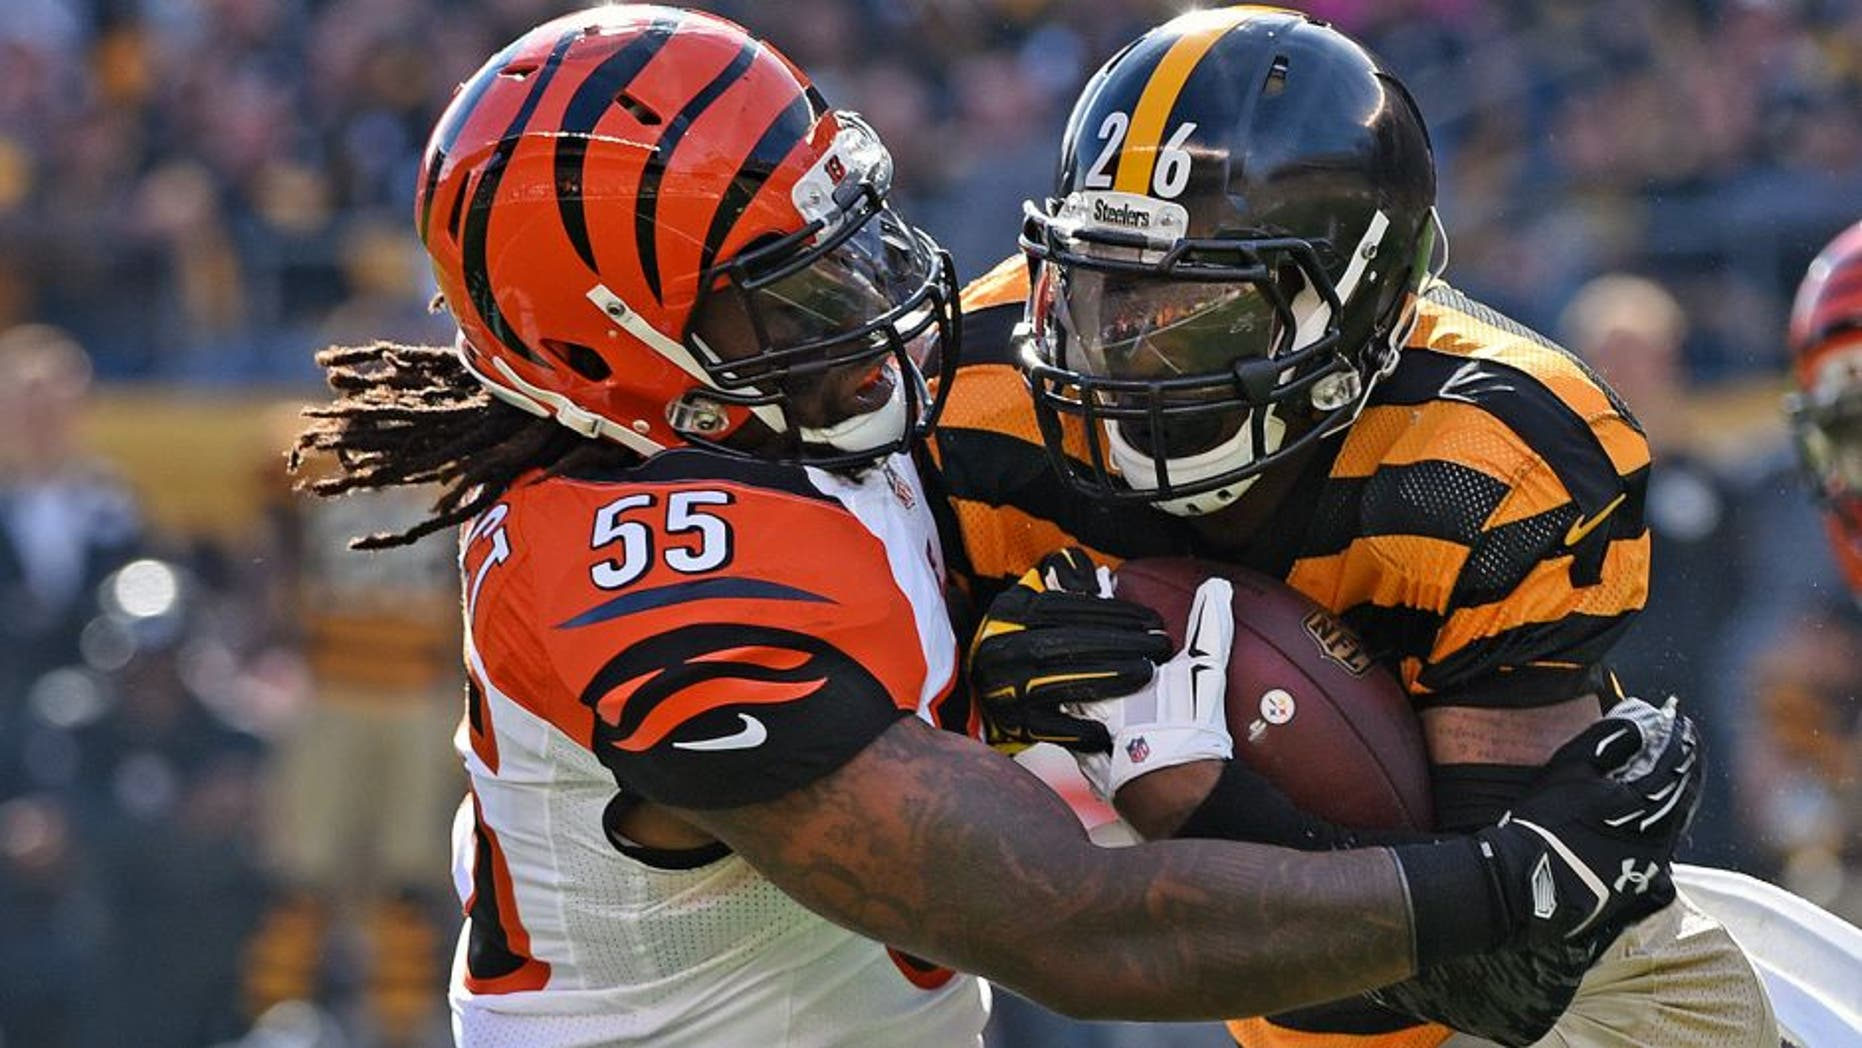 PITTSBURGH, PA - NOVEMBER 1: Linebacker Vontaze Burfict #55 of the Cincinnati Bengals tackles running back Le'Veon Bell #26 of the Pittsburgh Steelers during a game at Heinz Field on November 1, 2015 in Pittsburgh, Pennsylvania. The Bengals defeated the Steelers 16-10. (Photo by George Gojkovich/Getty Images)